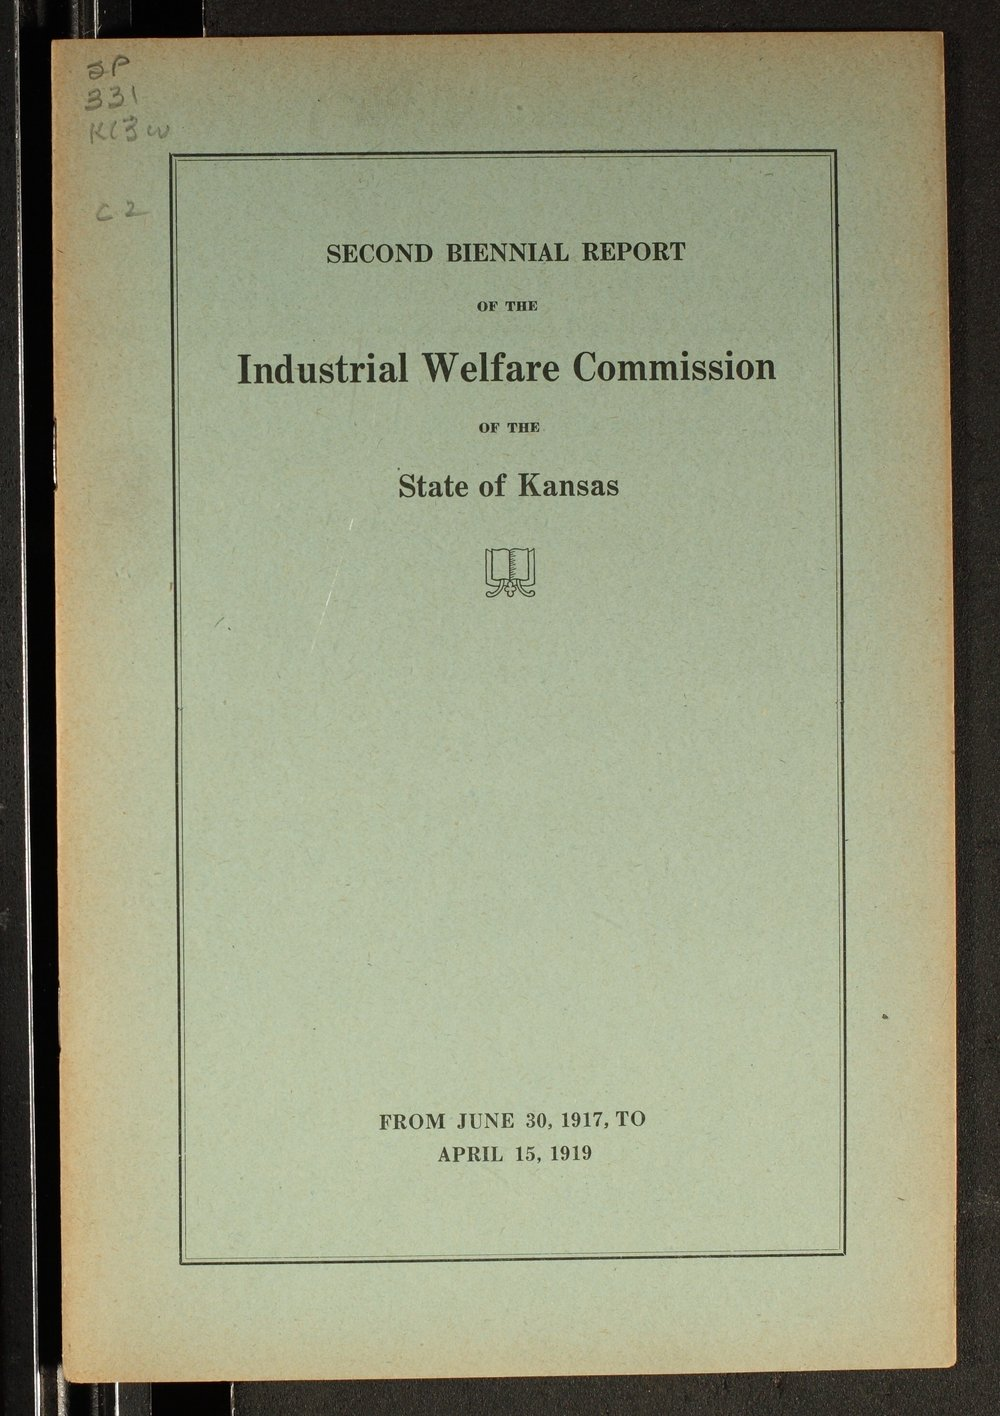 Second biennial report of the Industrial Welfare Commission of the State of Kansas - Front Cover